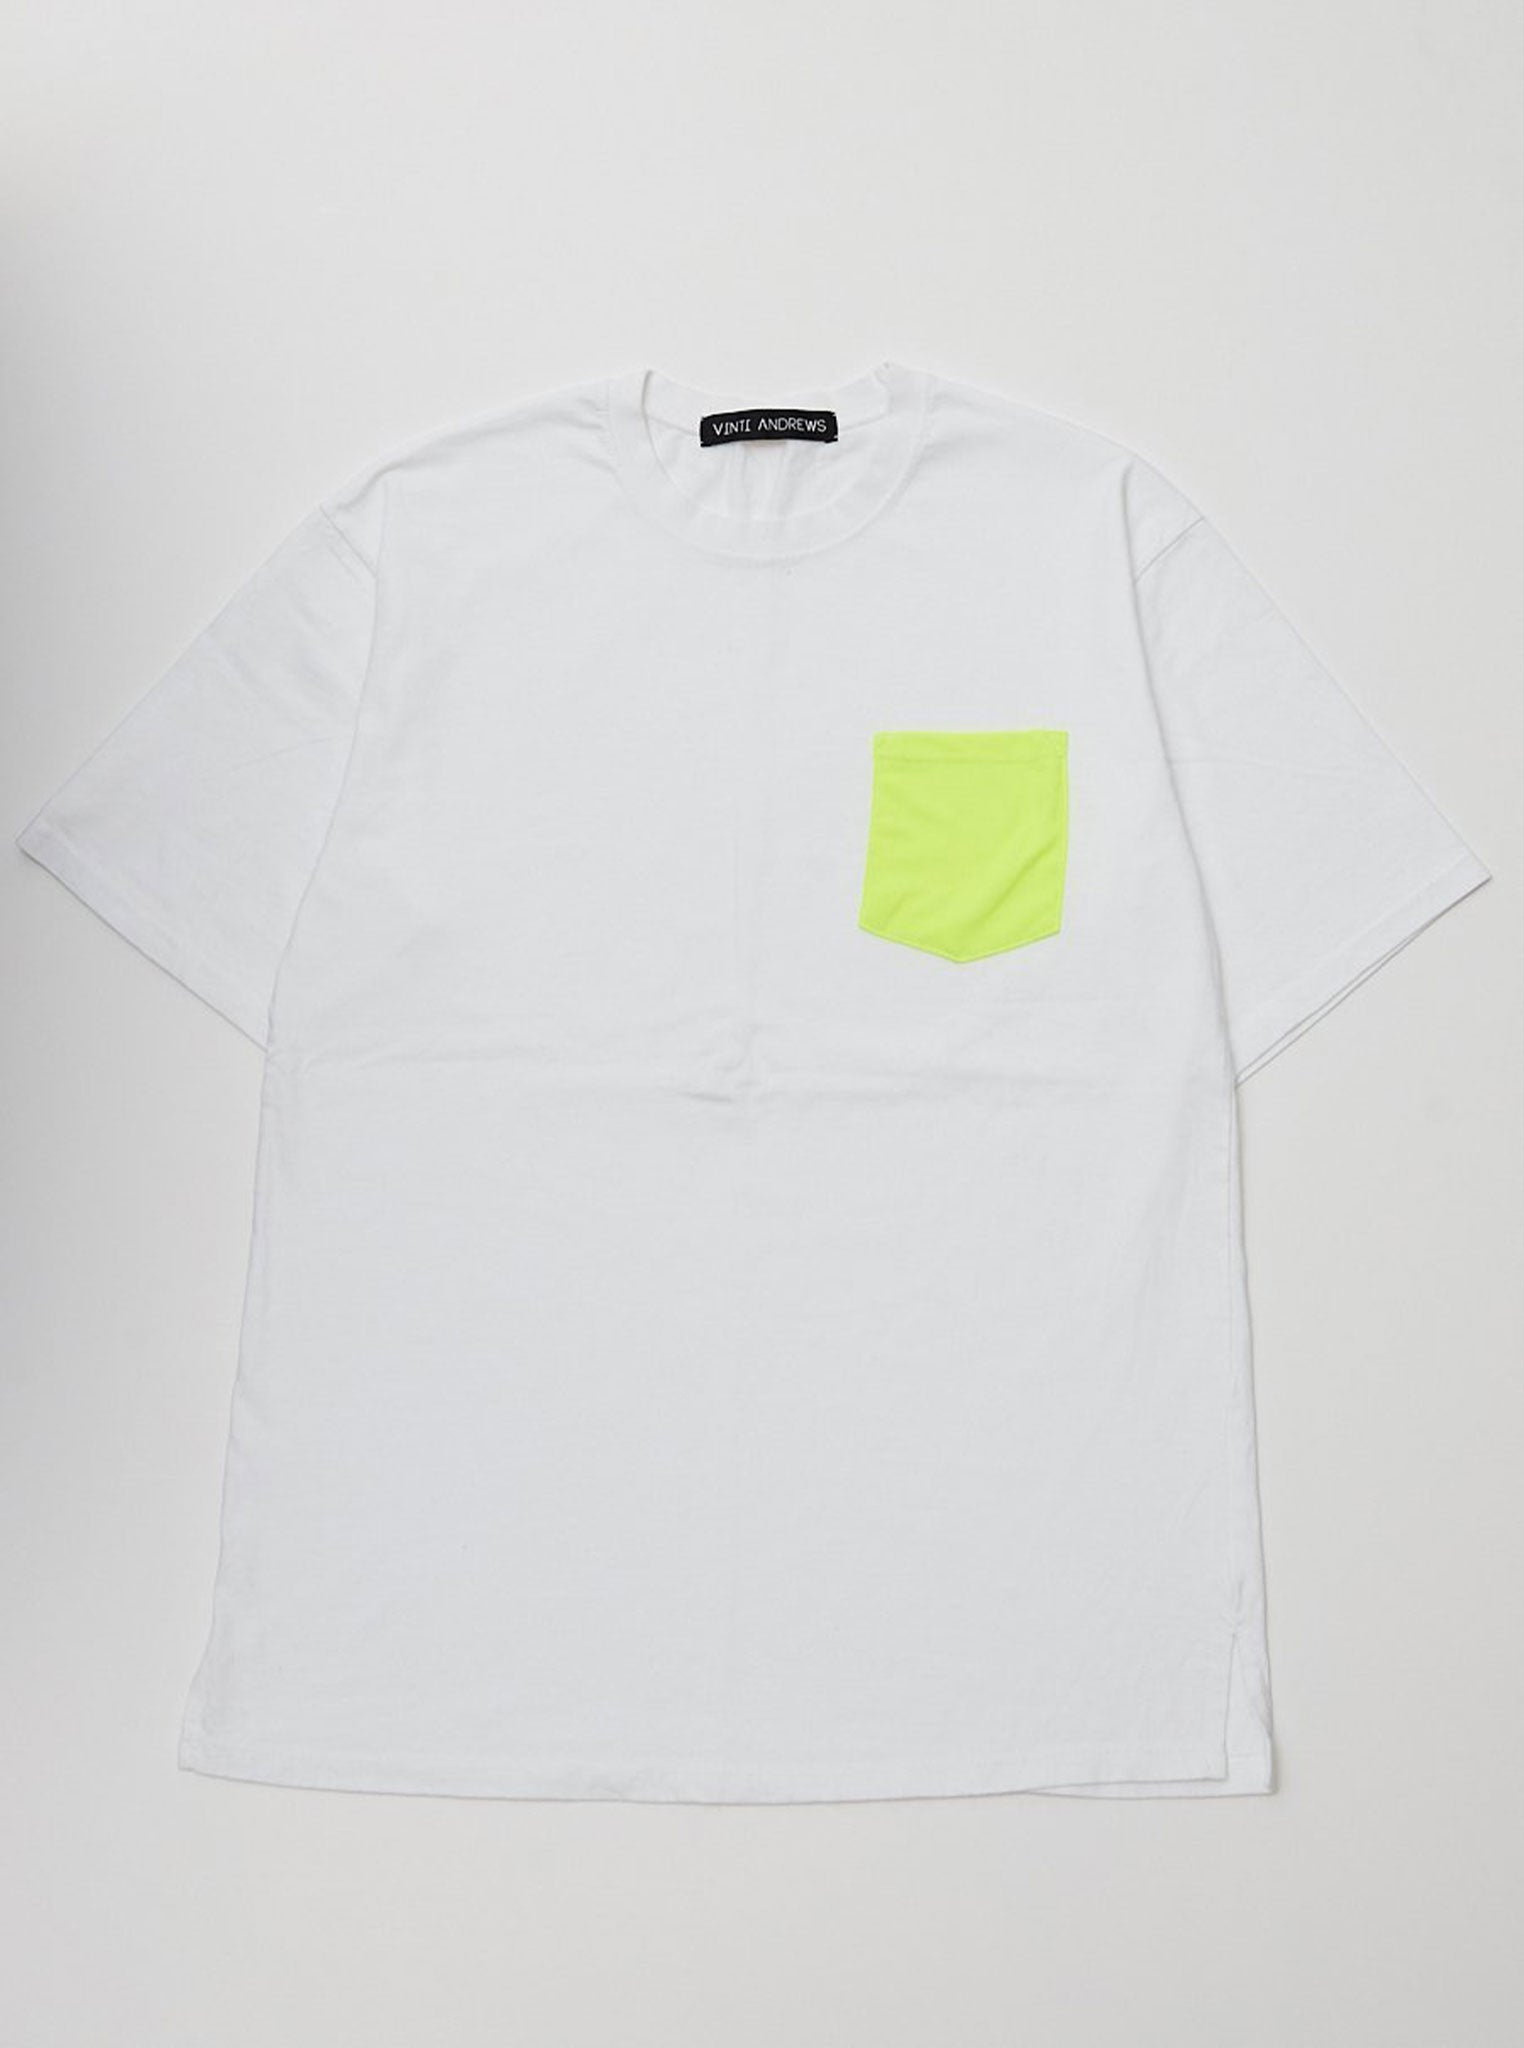 Vinti Andrews Neon Pocket T-Shirt